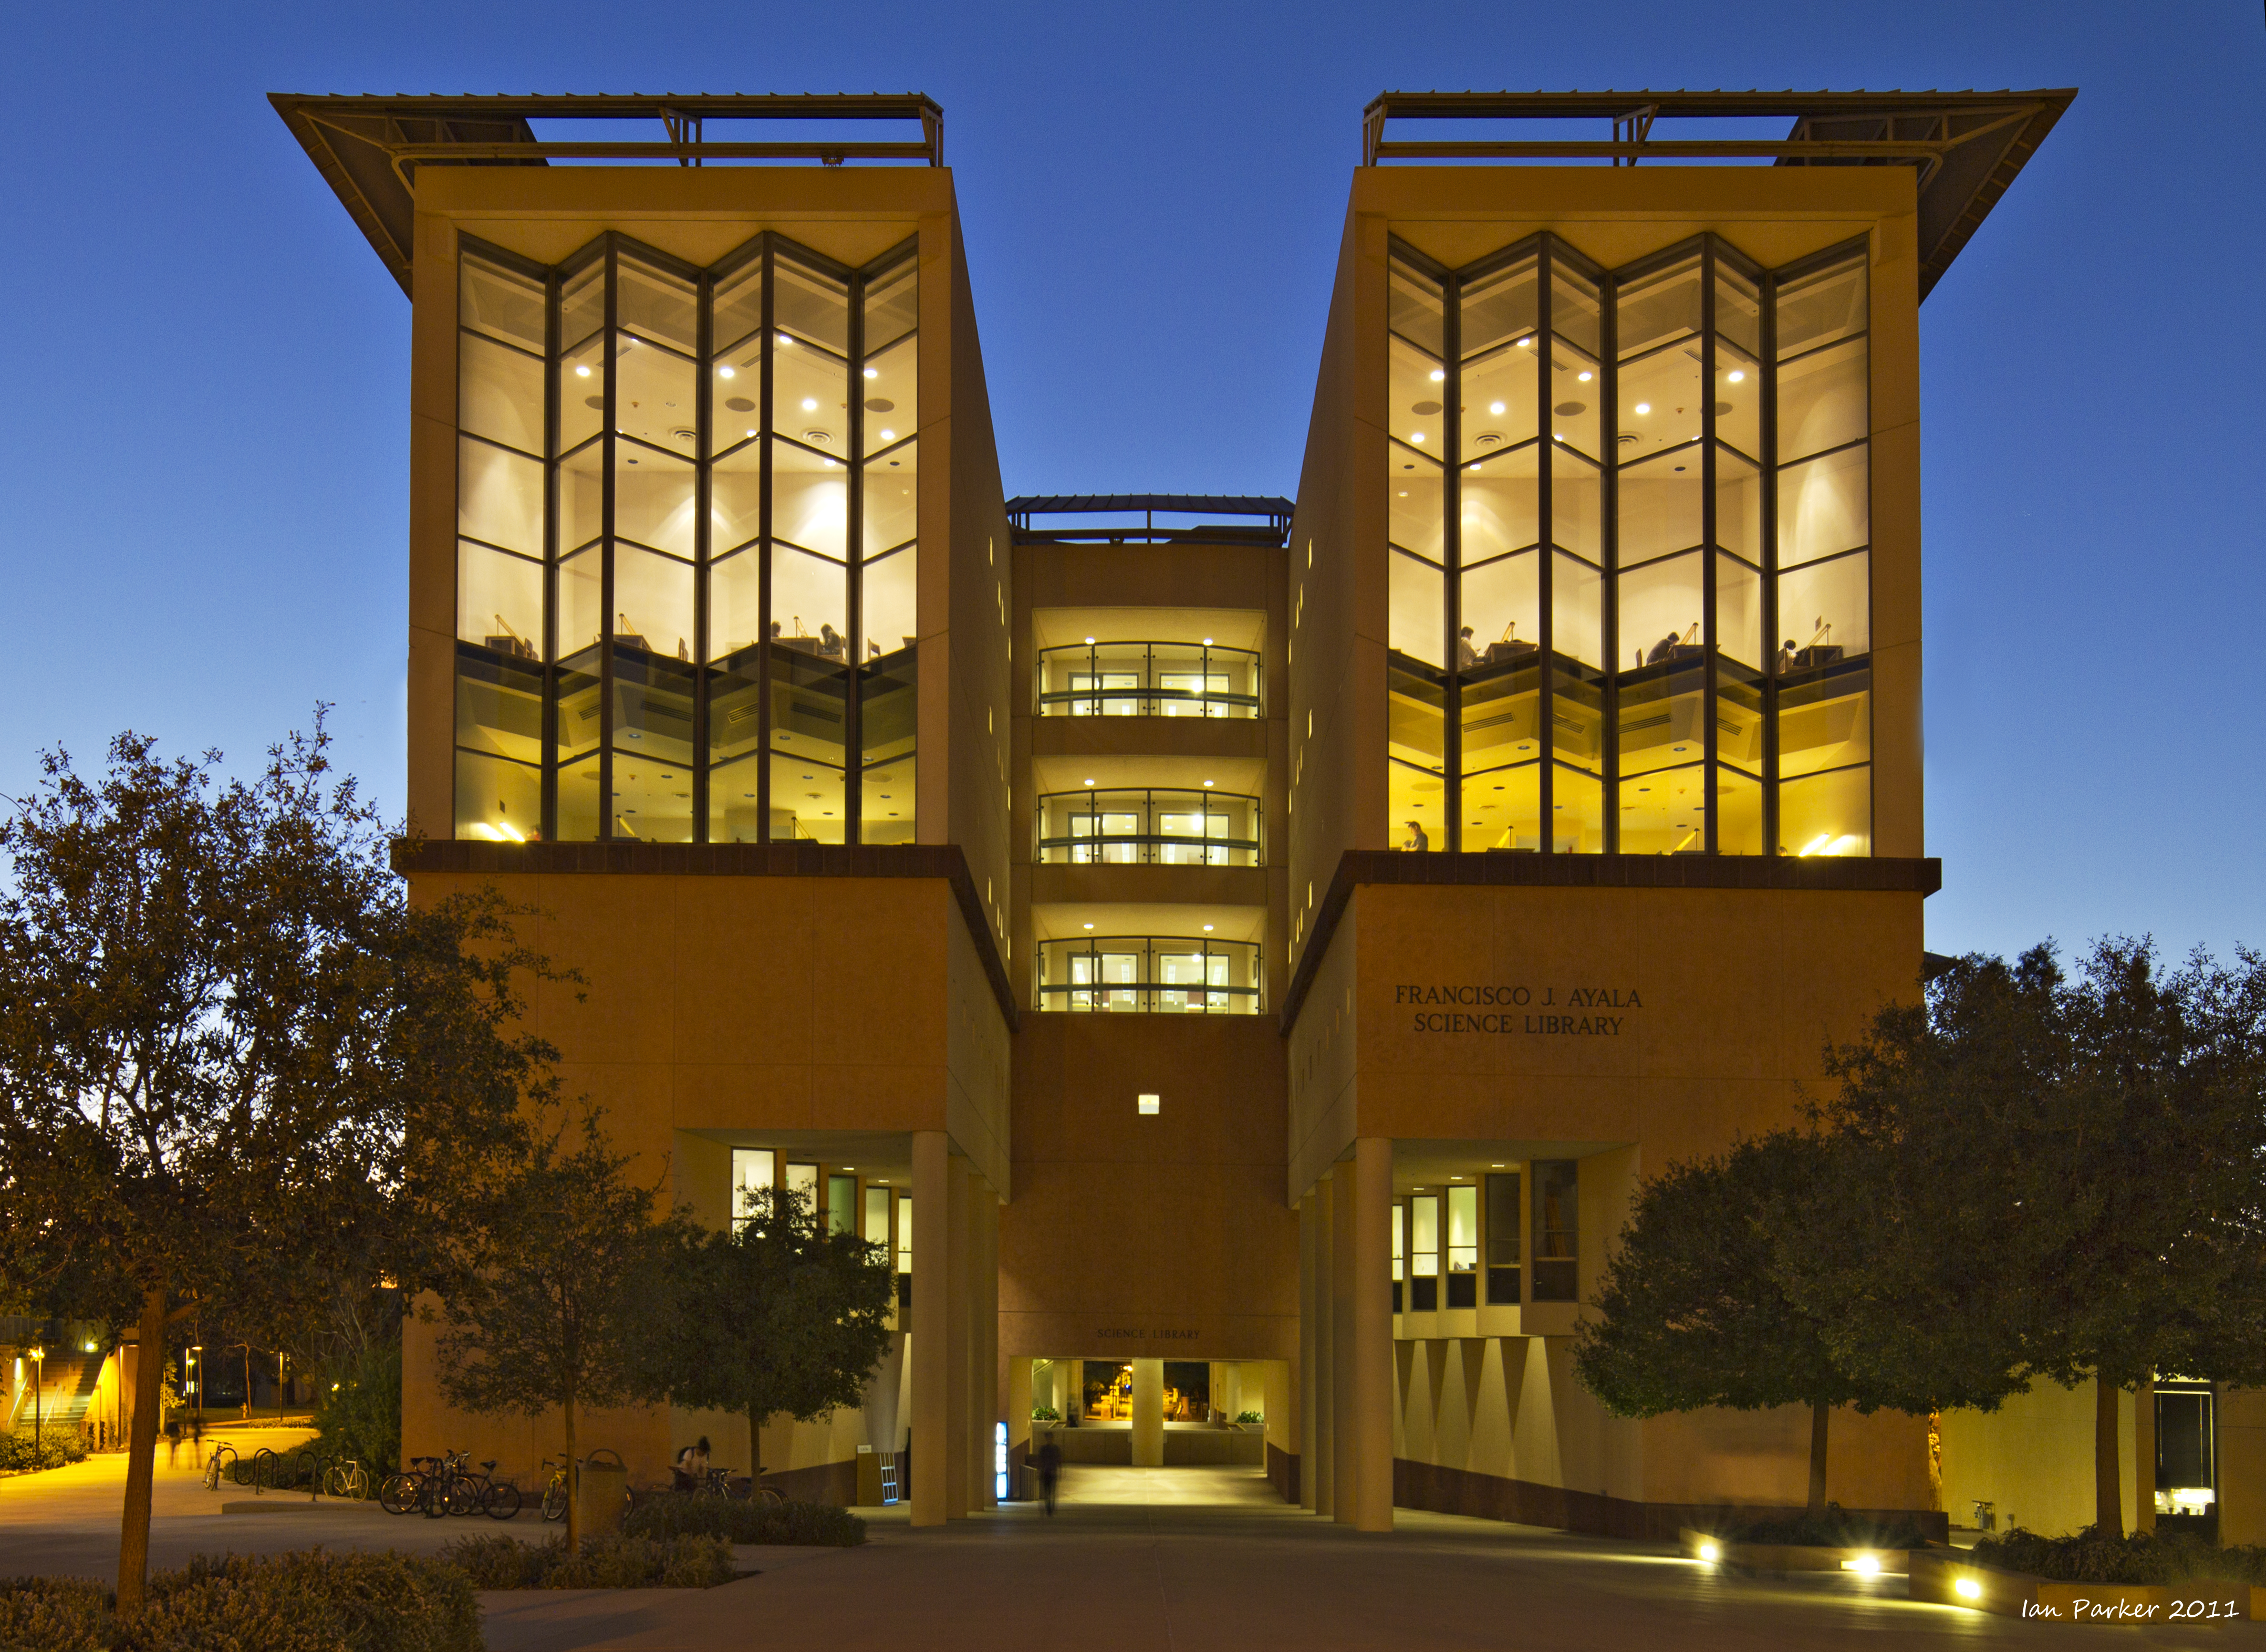 This is the outside of the UCI Science Library.